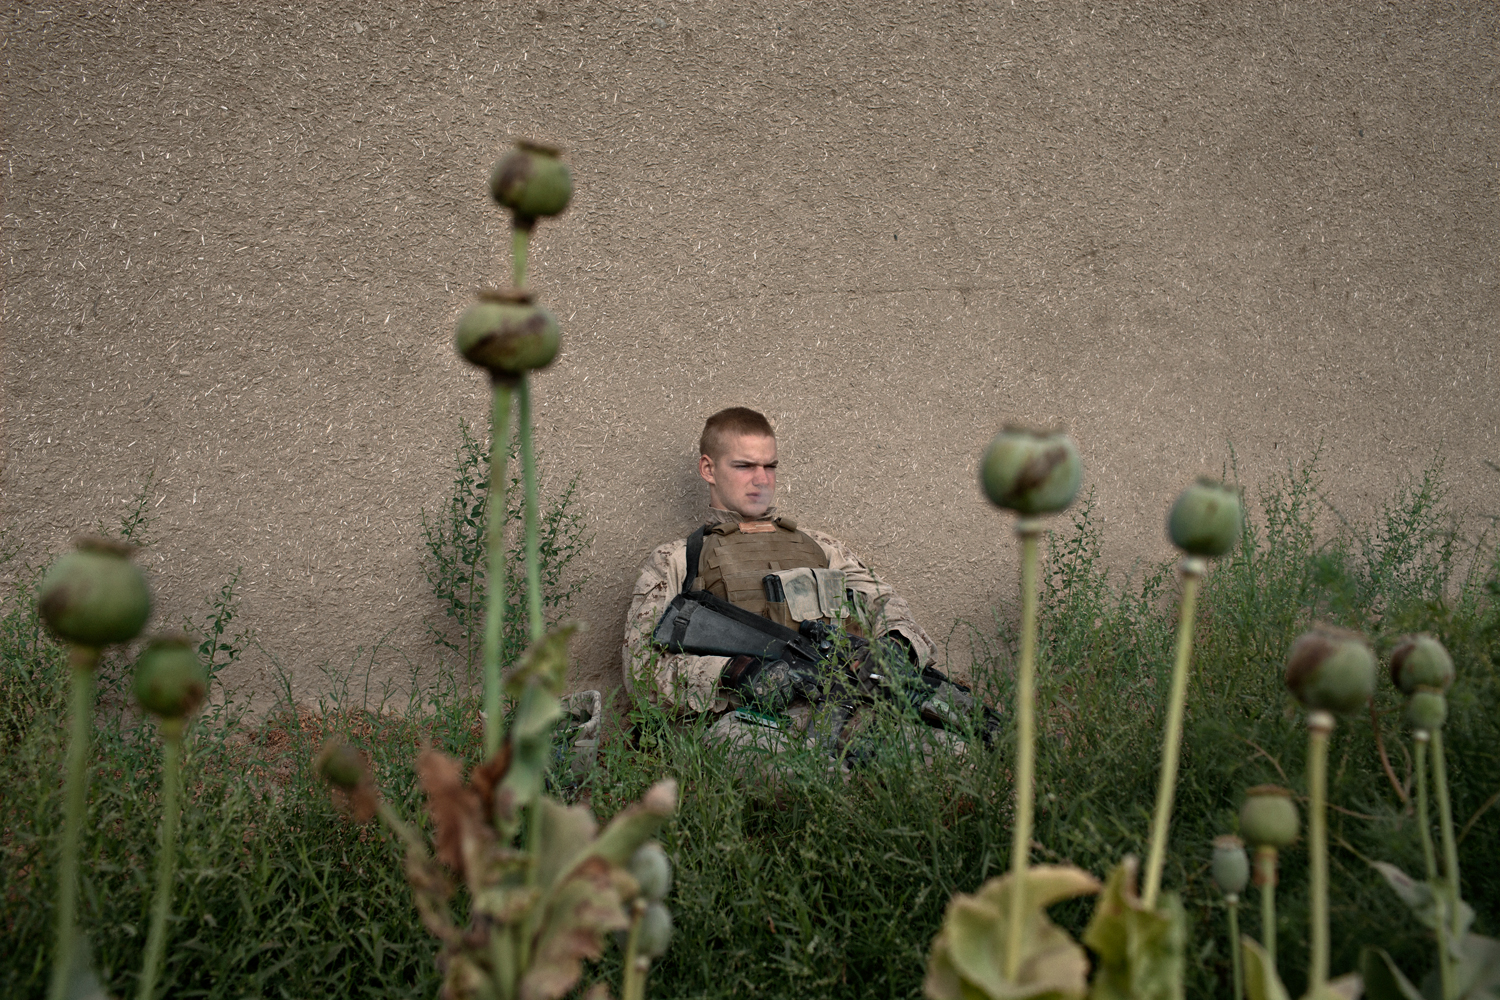 U.S. Marine Lance Corporal Nicholas Edwards stands guard over Afghan farmers harvesting opium inside Combat Operations Post Coutu in Marja District, Helmand Province, Afghanistan.